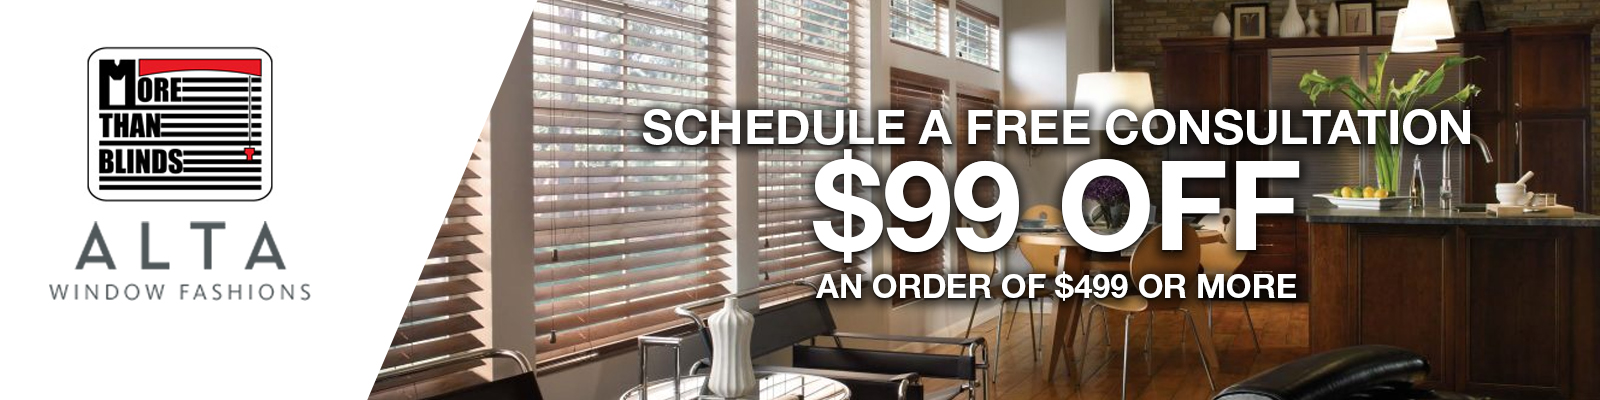 blinds free consultation